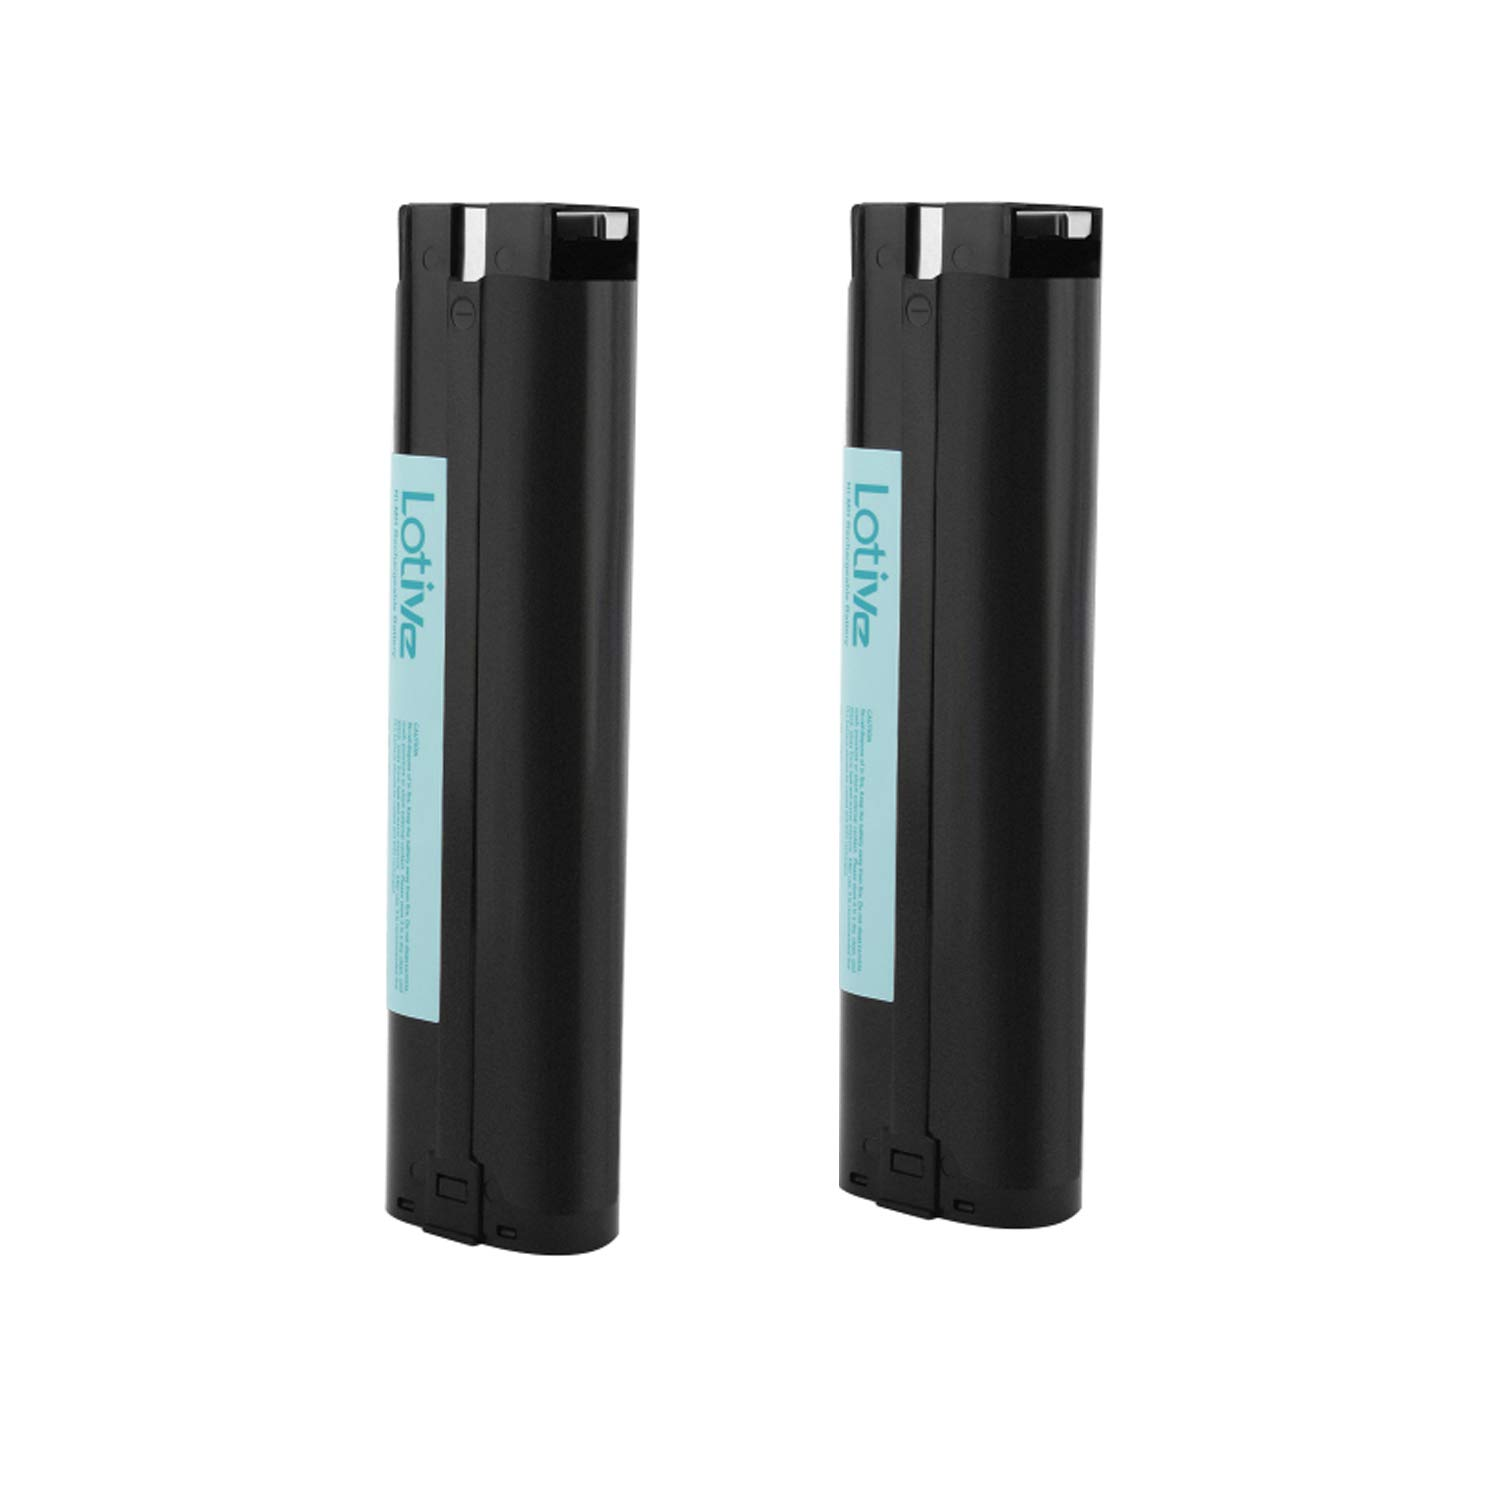 Lotive 2 Pack 9.6V 3000mAh Ni-MH Battery Replace for Makita 9.6V Power Cordles Drill 9600 9001 9000 9002 9033 96003 192696-2 193890-9 632007-4 Ni-MH Replacement Battery Pack